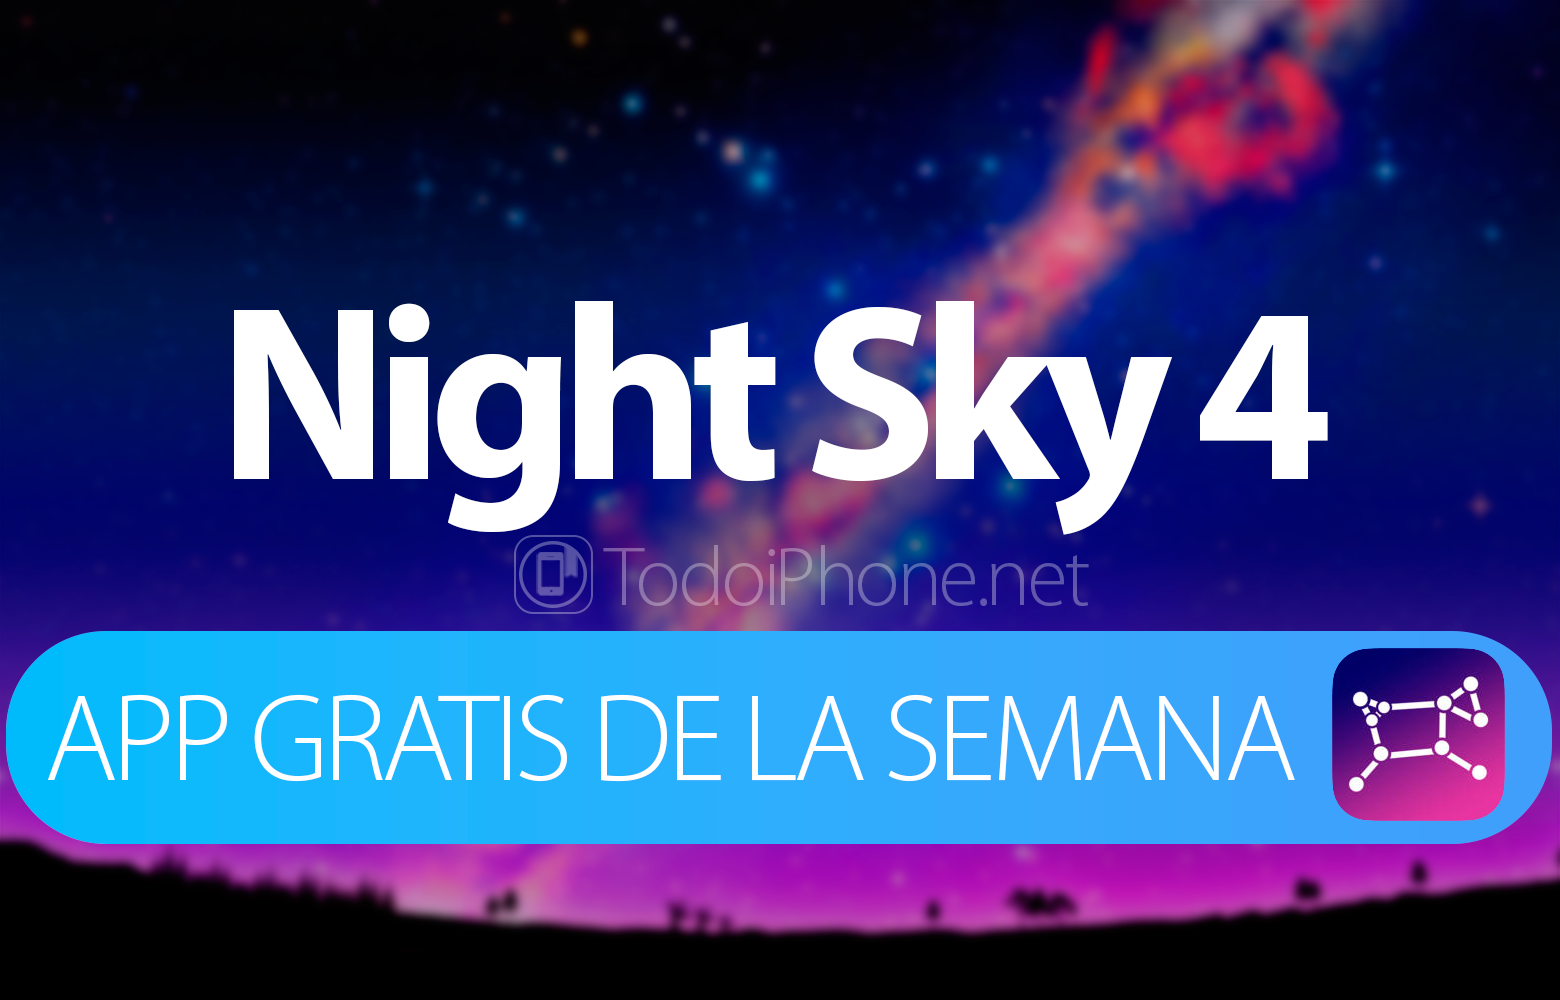 night-sky-4-app-gratis-semana